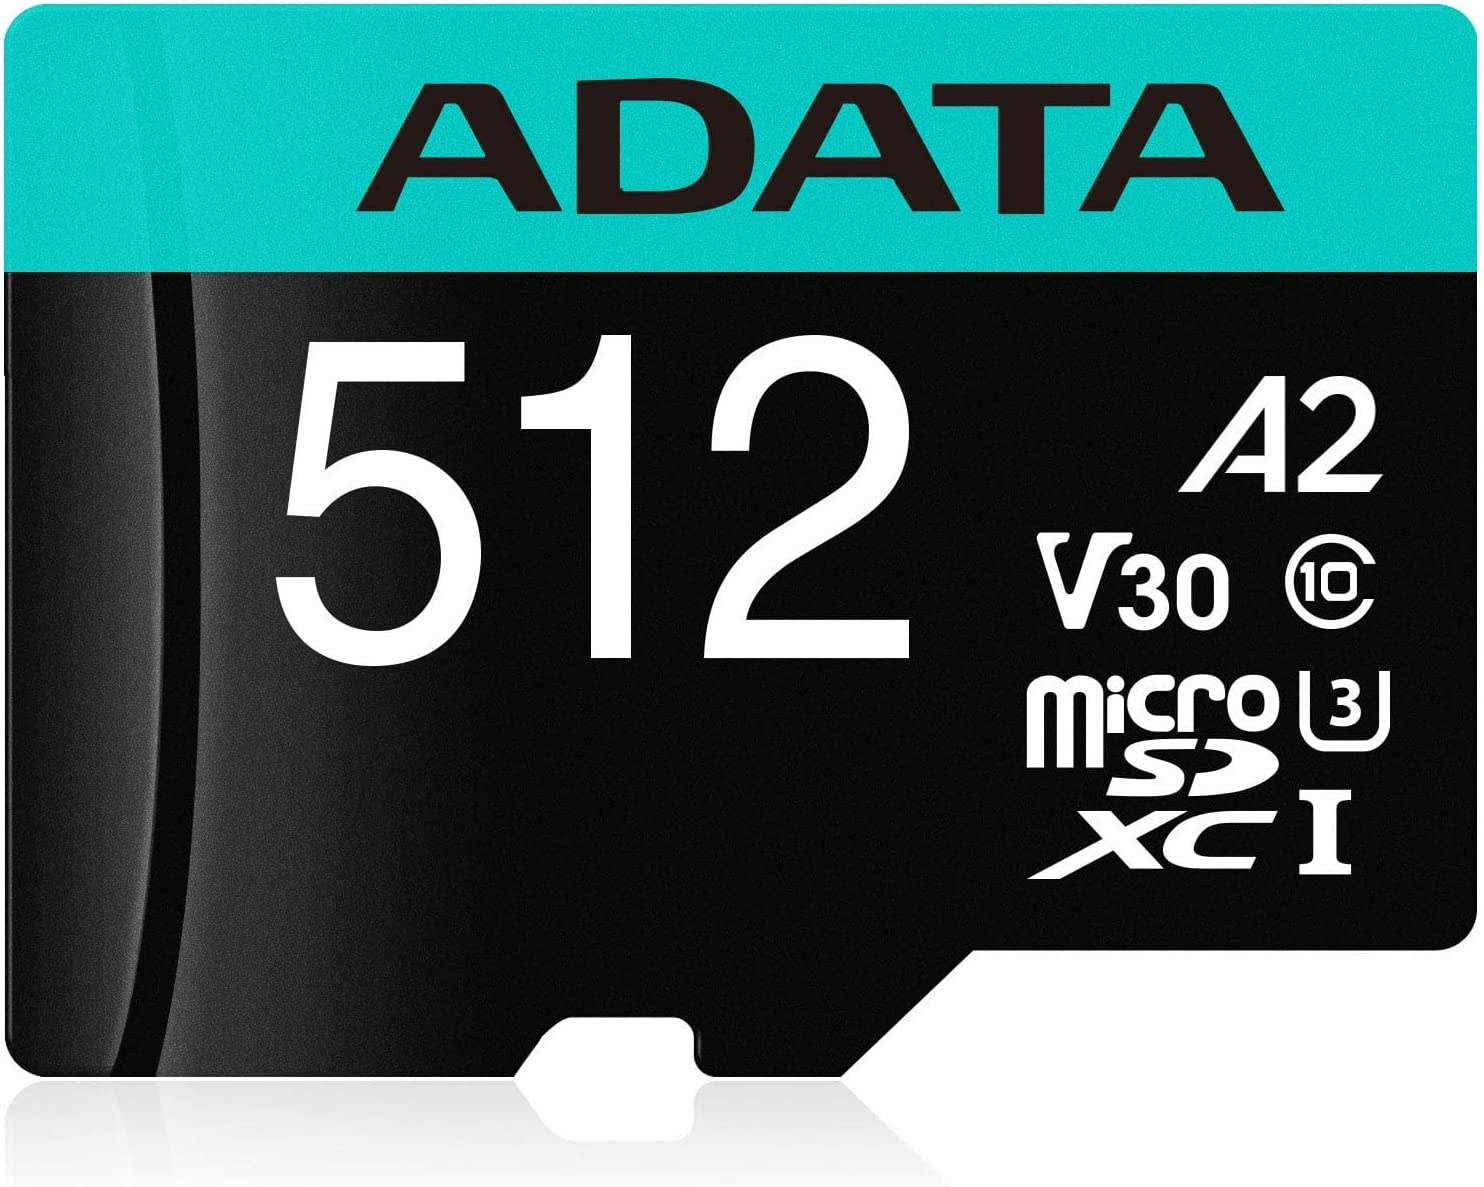 ADATA Premier Pro 512GB MicroSDXC/SDHC UHS-I U3 Class 10 V30S A2 Memory Card with SD Adapter - Waterproof, Shockproof, X-ray Proof, Magnet Proof and Temperature Resistant